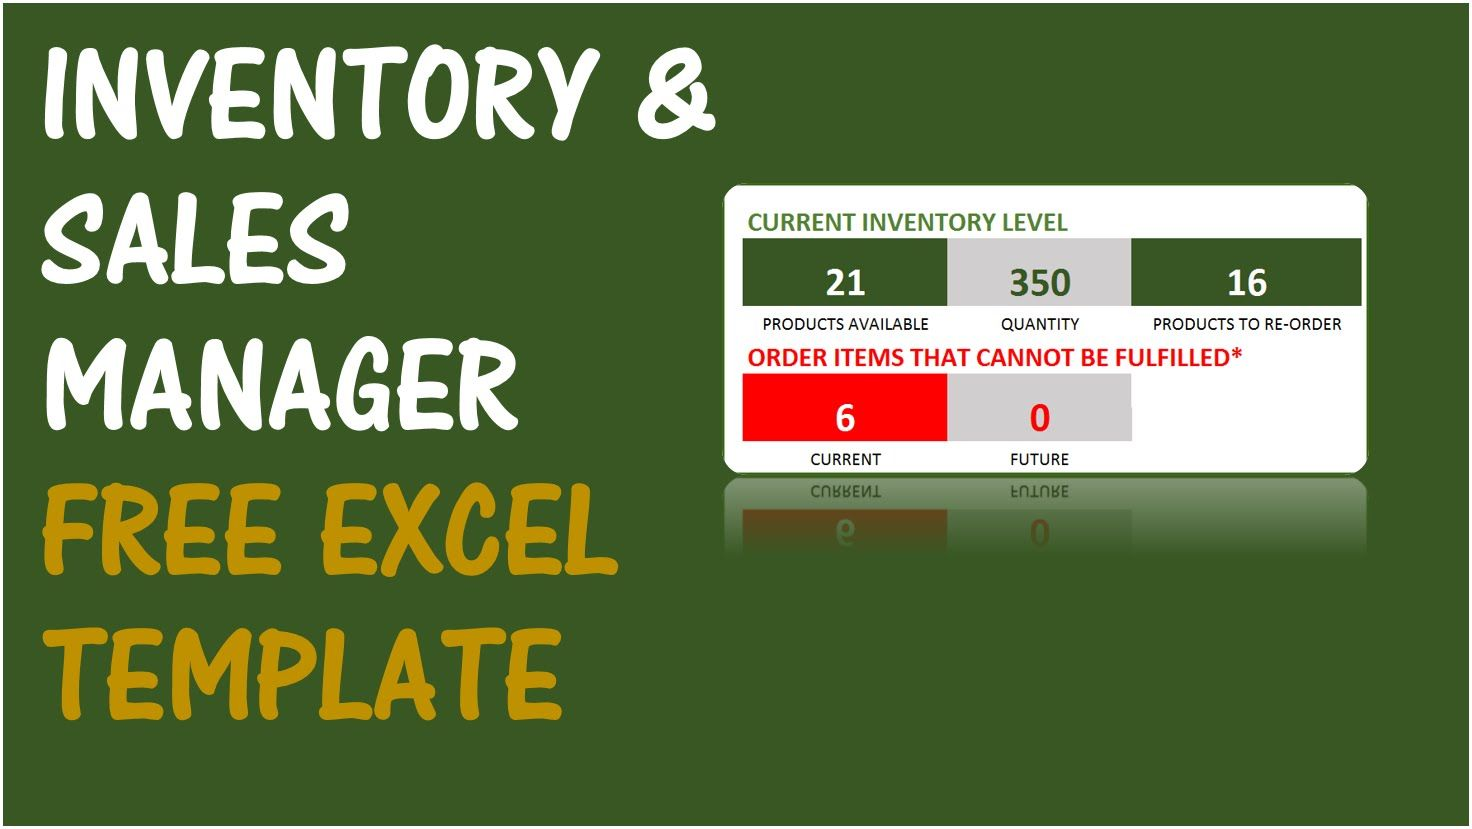 Free Inventory Management Software in Excel - Inventory